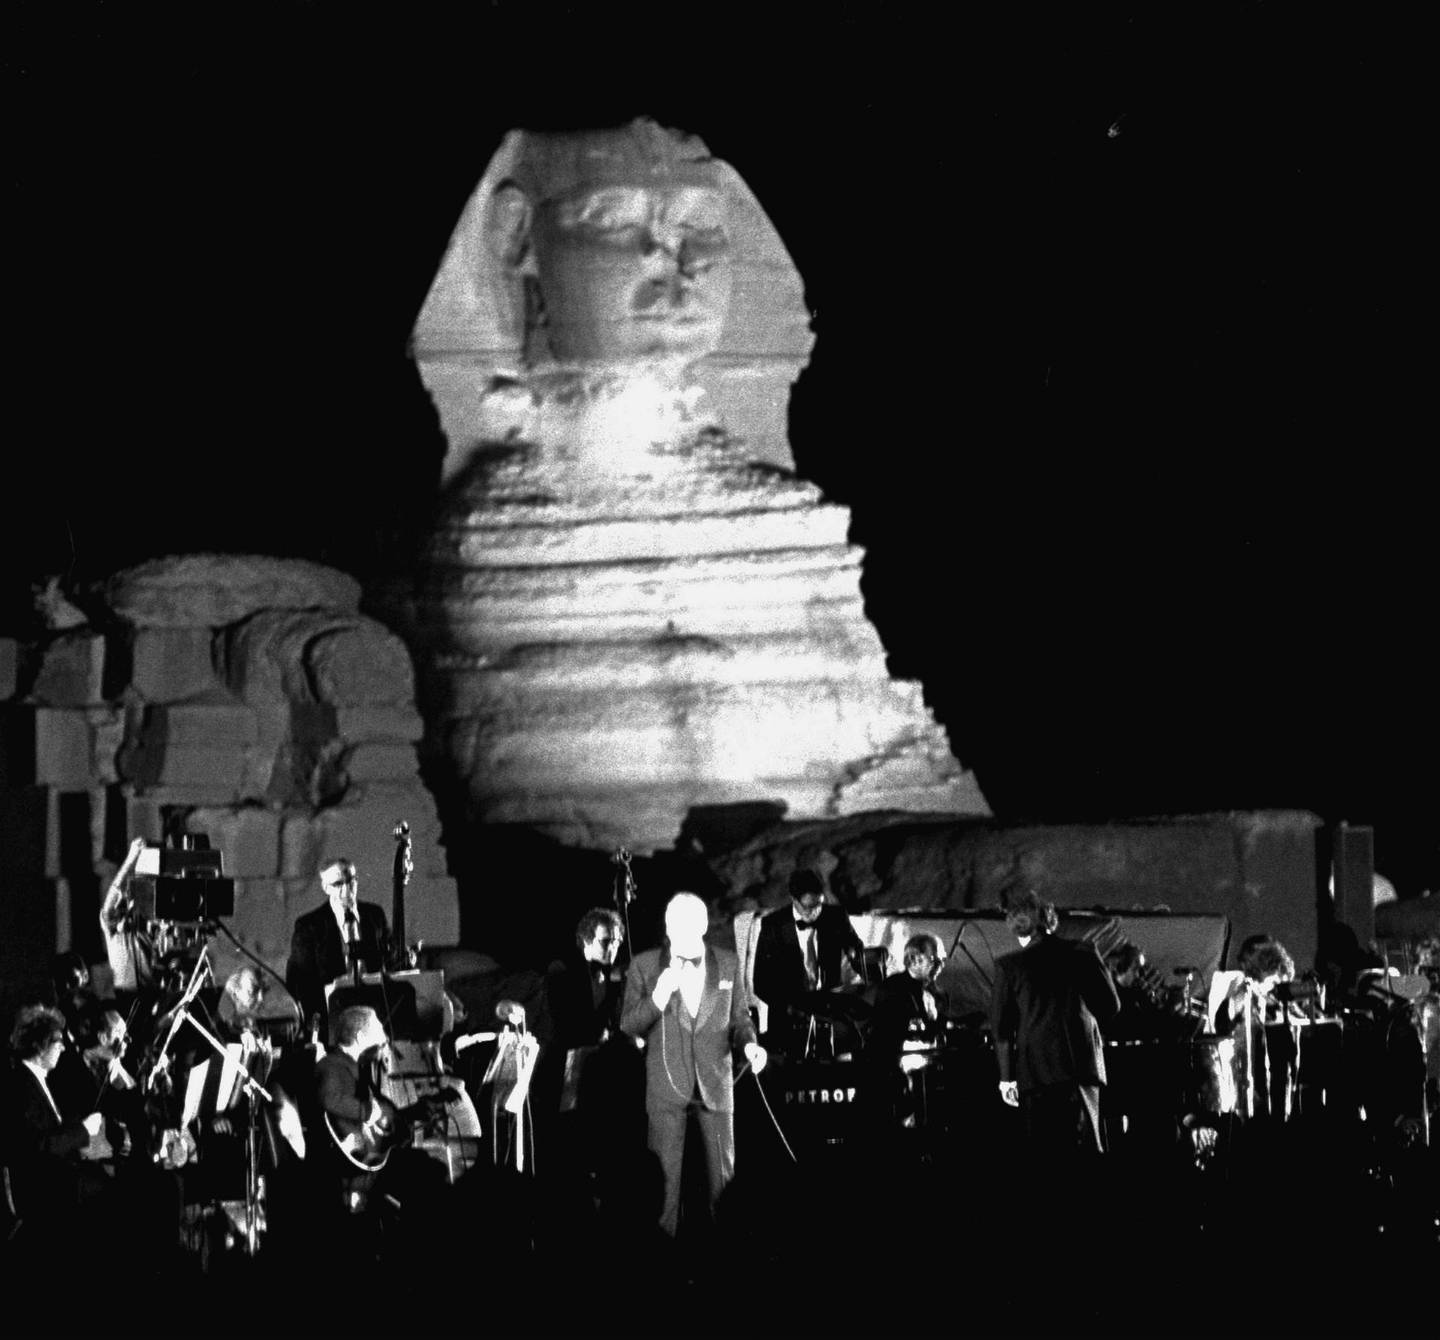 American singer Frank Sinatra is seen during his concert performance in front of the Sphinx in Giza Thursday night, September 27, 1979, in Cairo, Egypt.  Sinatra was invited to perform at the benefit concert for the Wafa Amal rehabilitation center for handicapped children by Egypt's First Lady, Jihan Sadat. (AP Photo/Bill Foley)